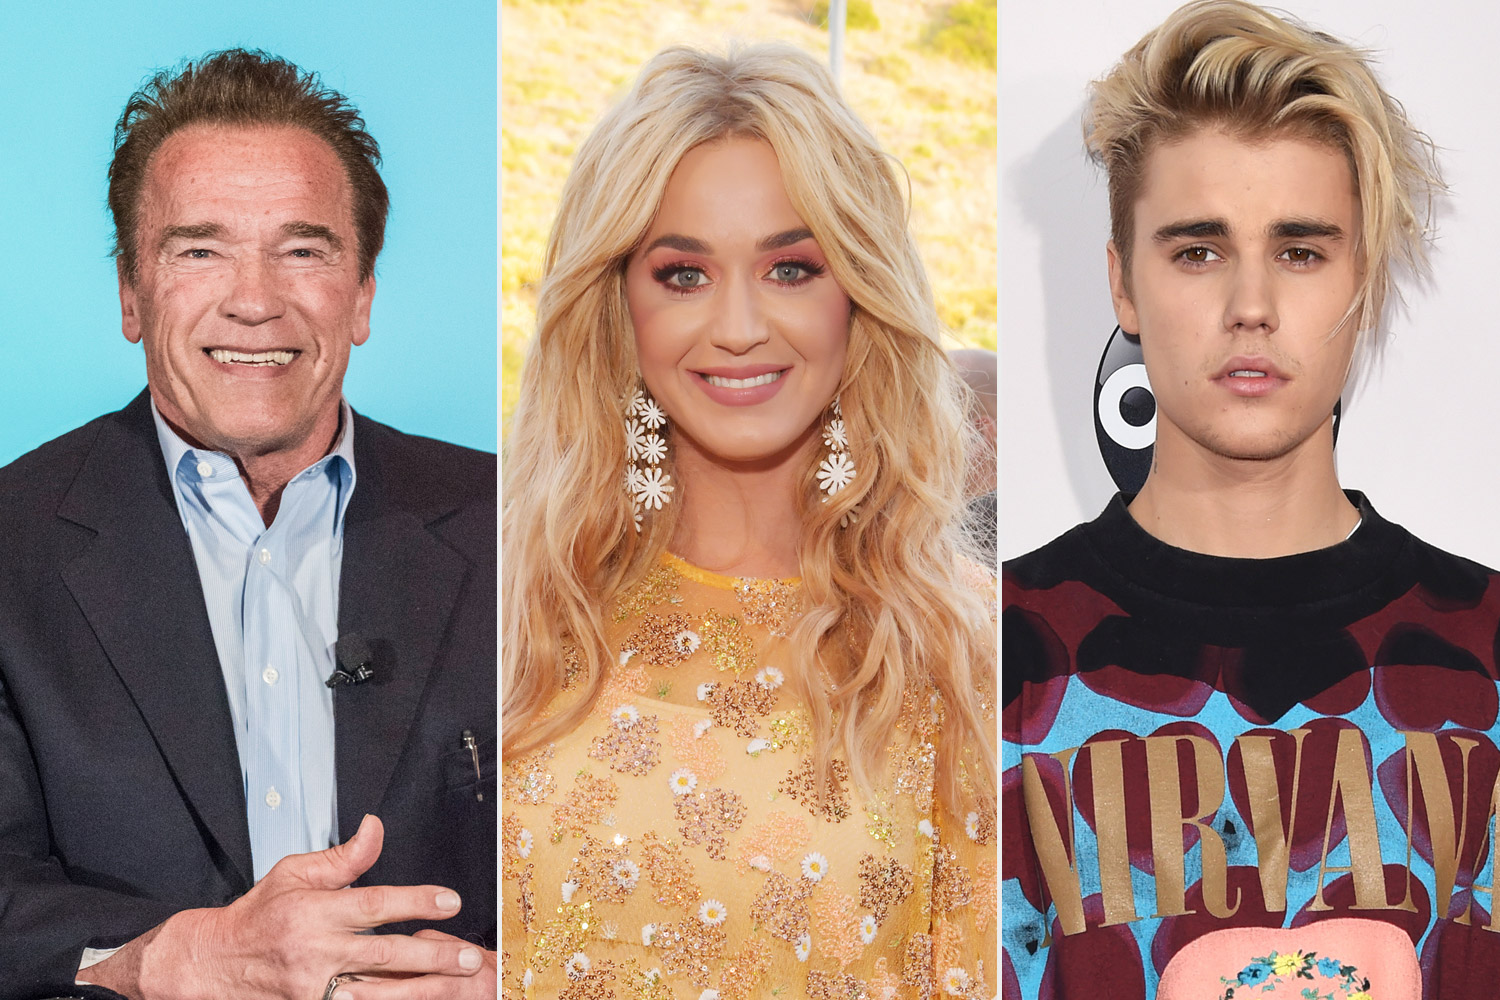 Justin Bieber, Katy Perry and Arnold Schwarzenegger